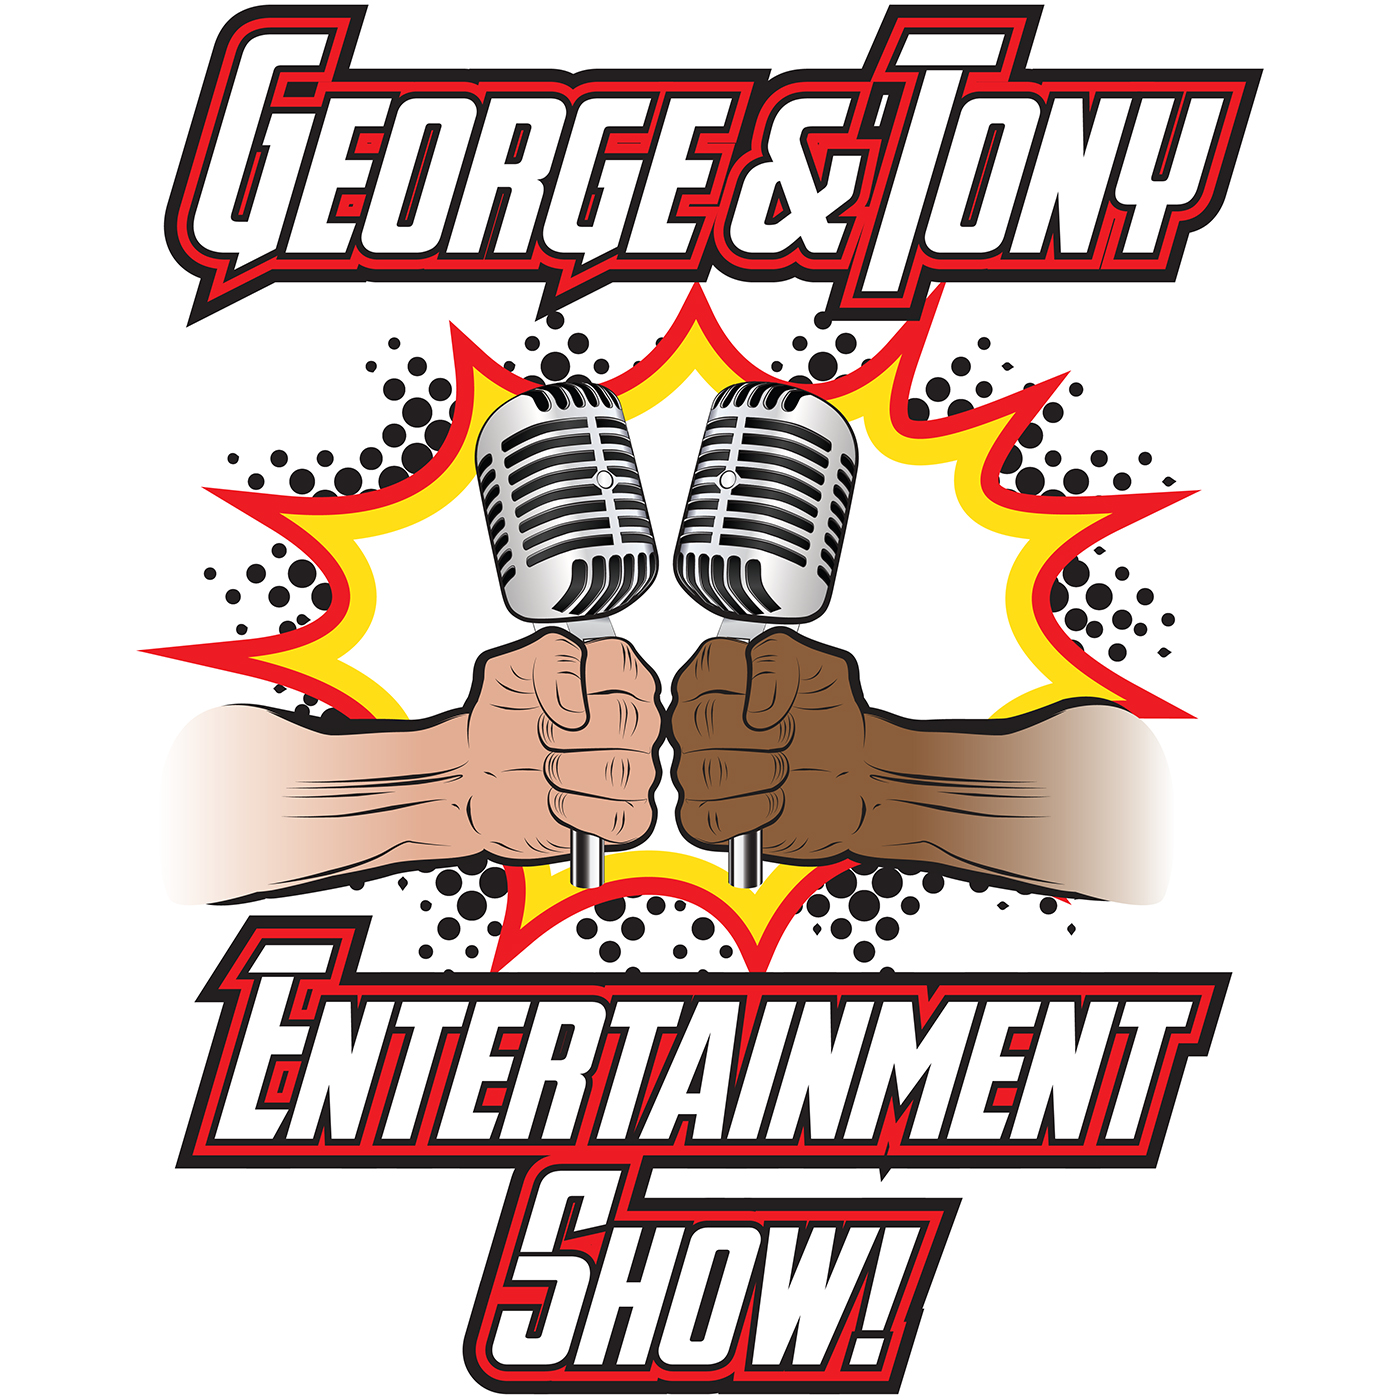 George and Tony Entertainment Show #34